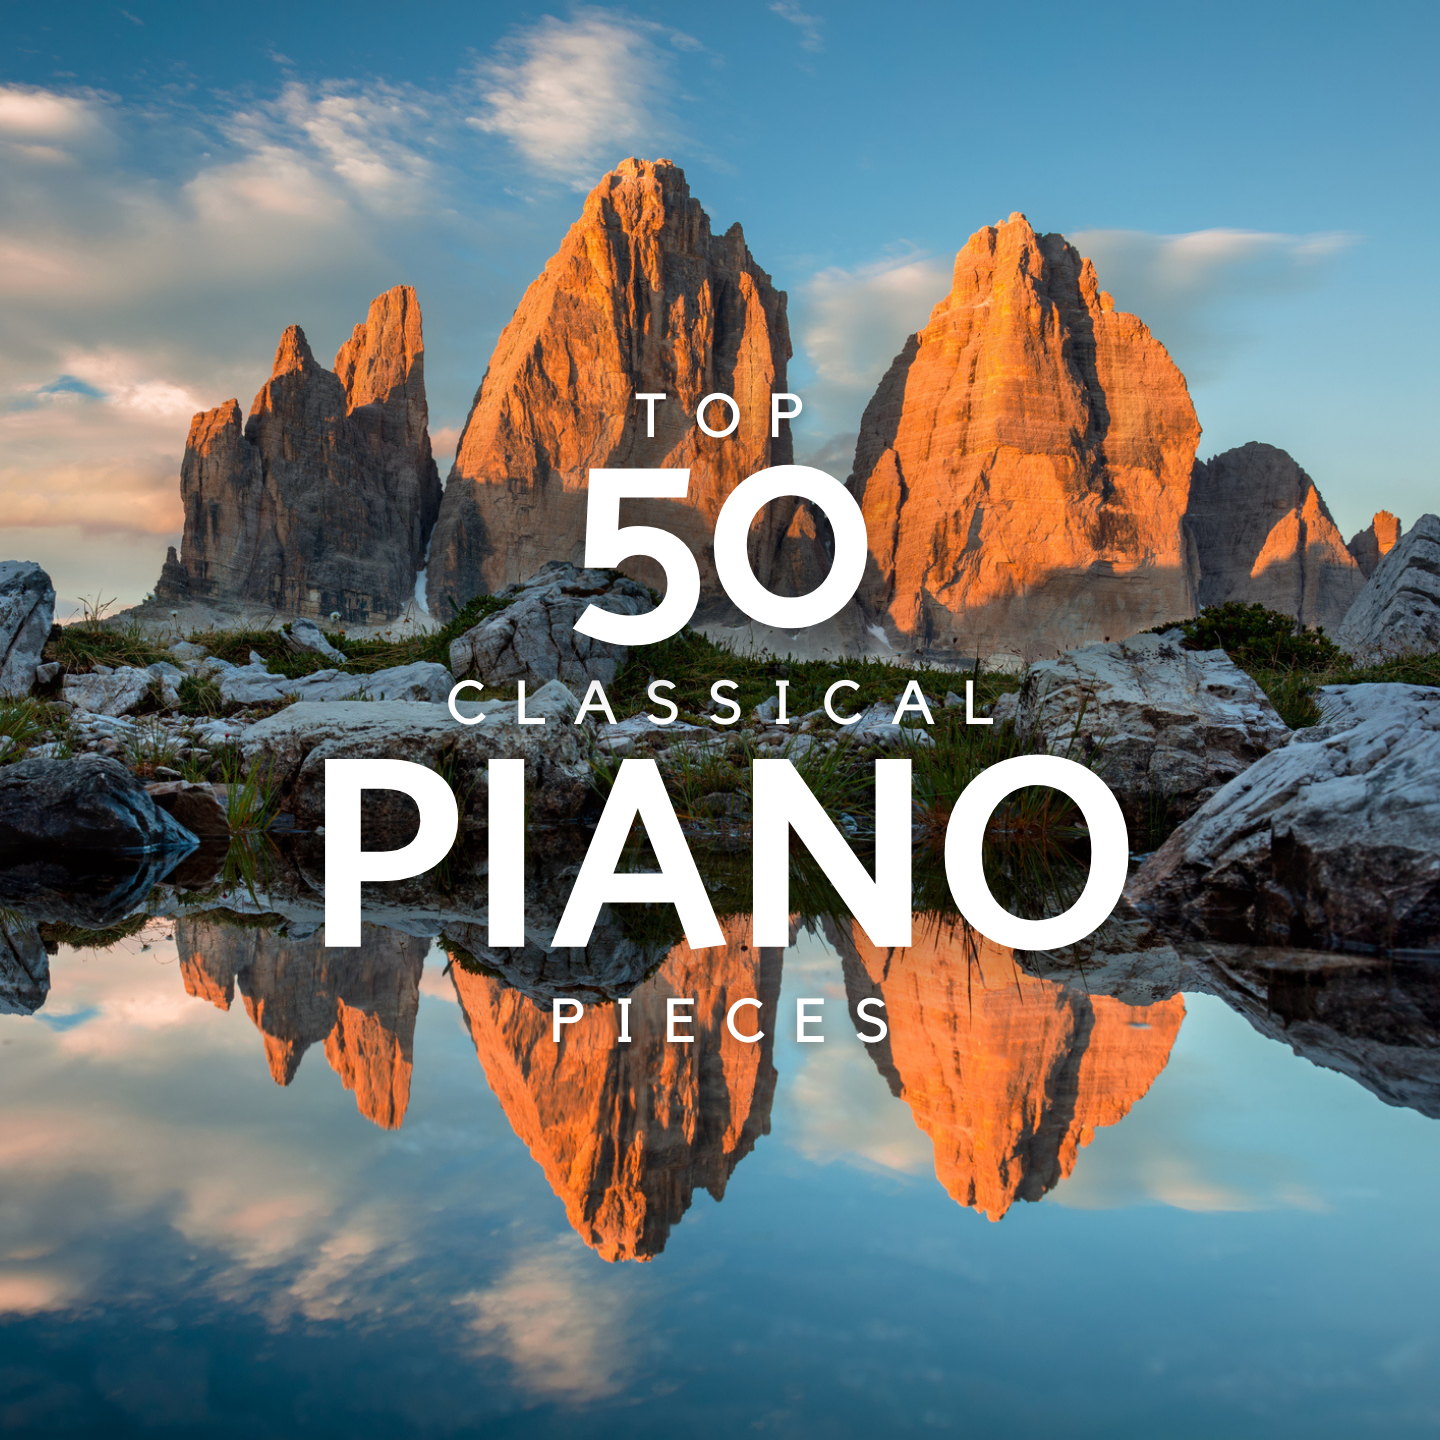 Top 50 Classical Piano Pieces